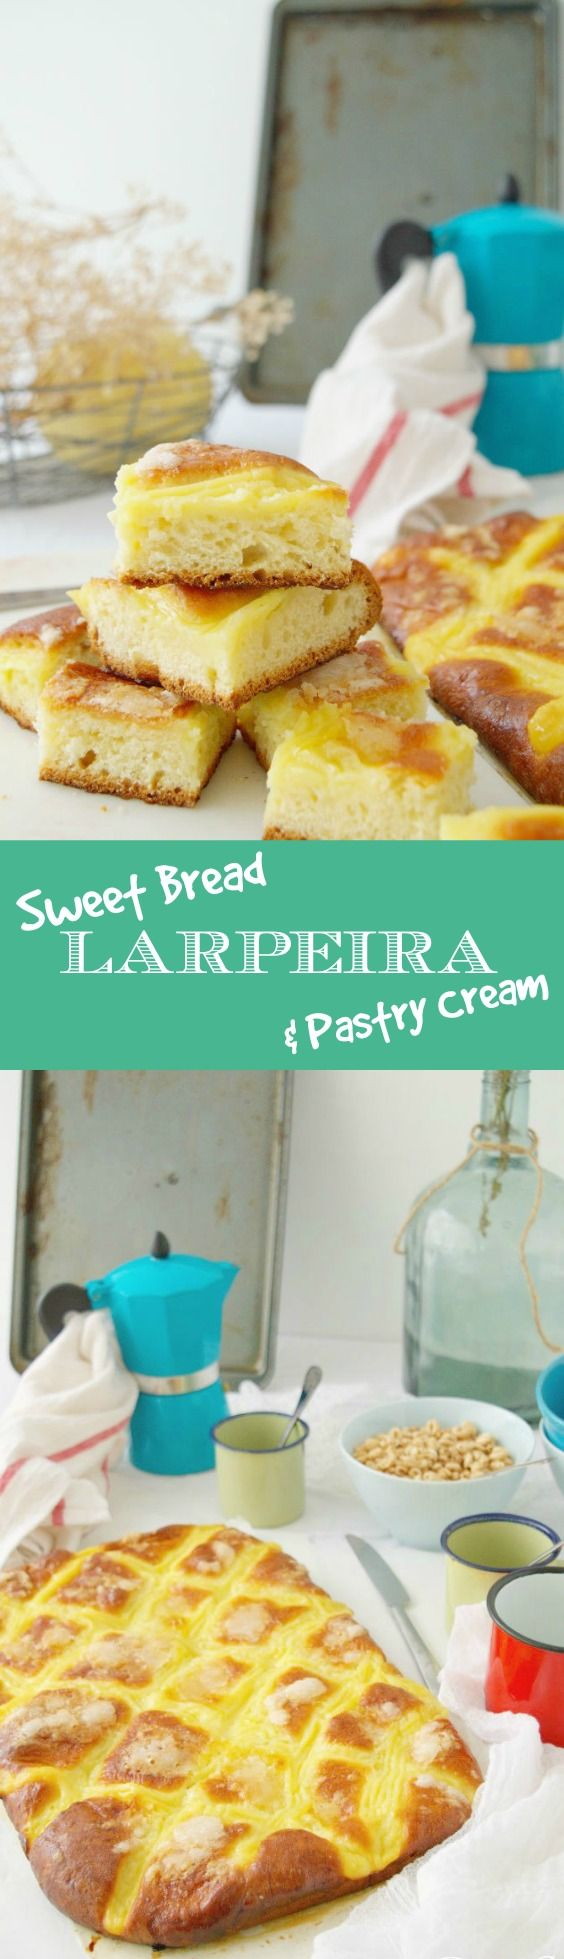 Sweet bread & Pastry Cream - Larpeira - Typical from Galicia (Spain) - English recipe included. I couldn't stop eating it.  Larpeira o bolla dulce gallega, no hay un San Juan sin ella.